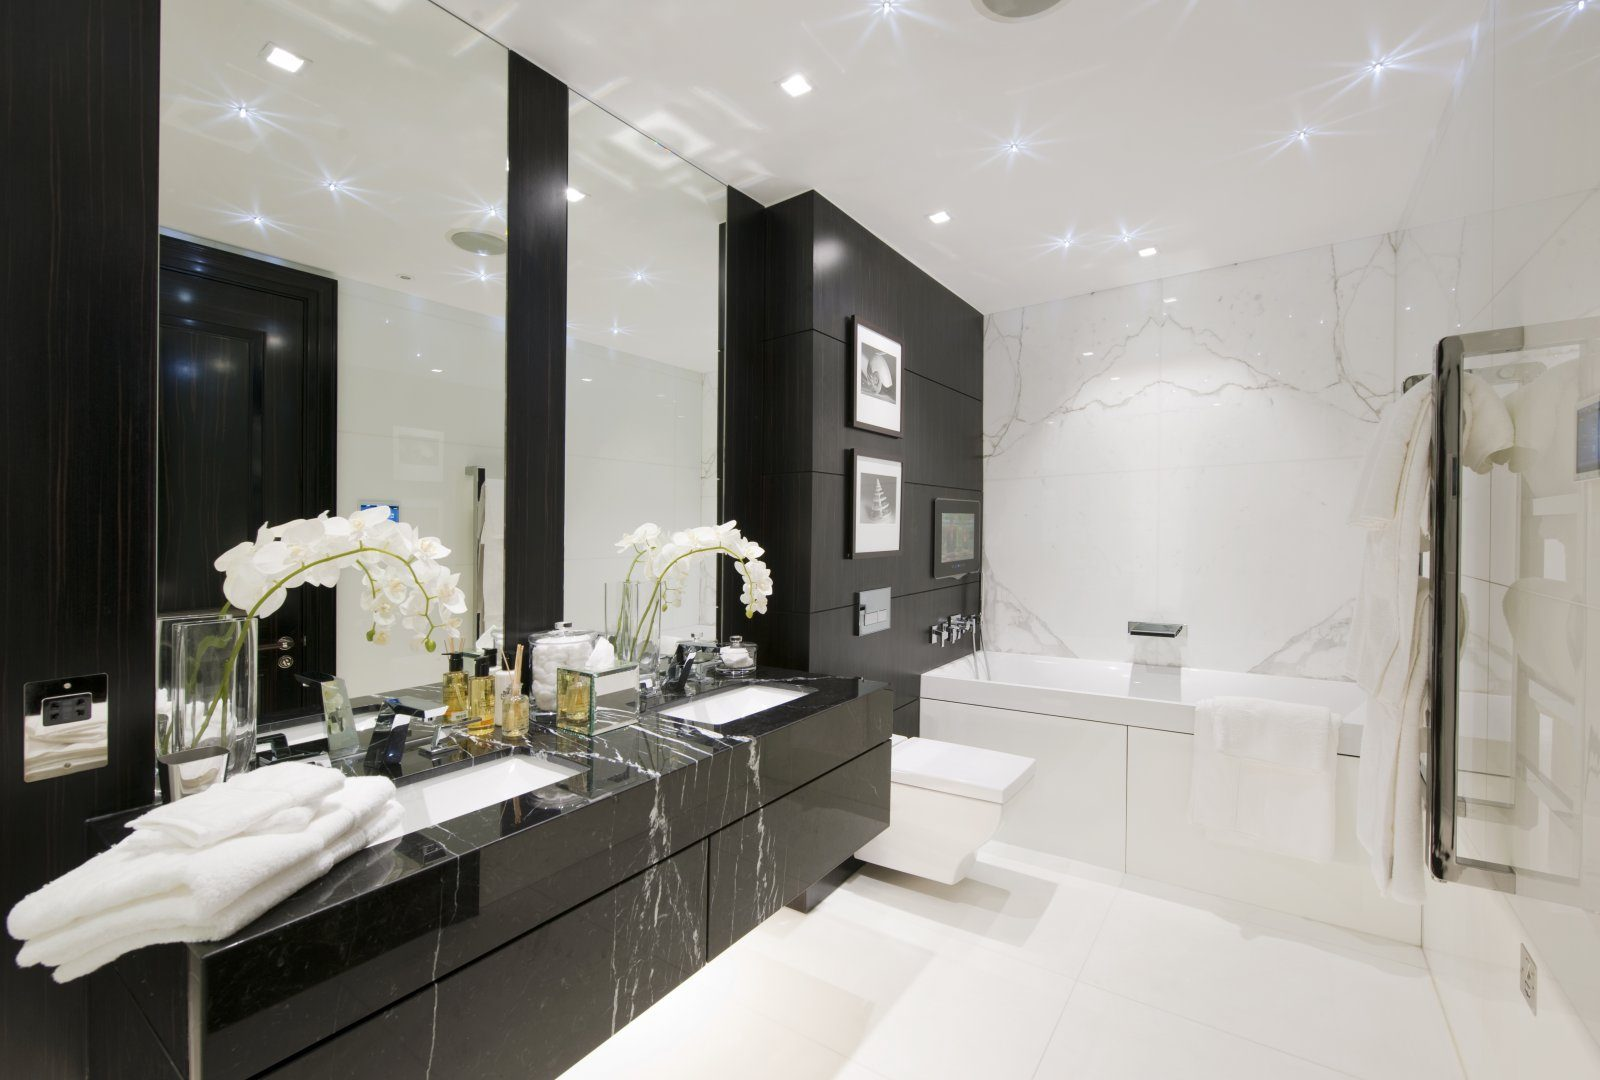 Hypnotic illuminated contrasting large bathroom with dark furniture